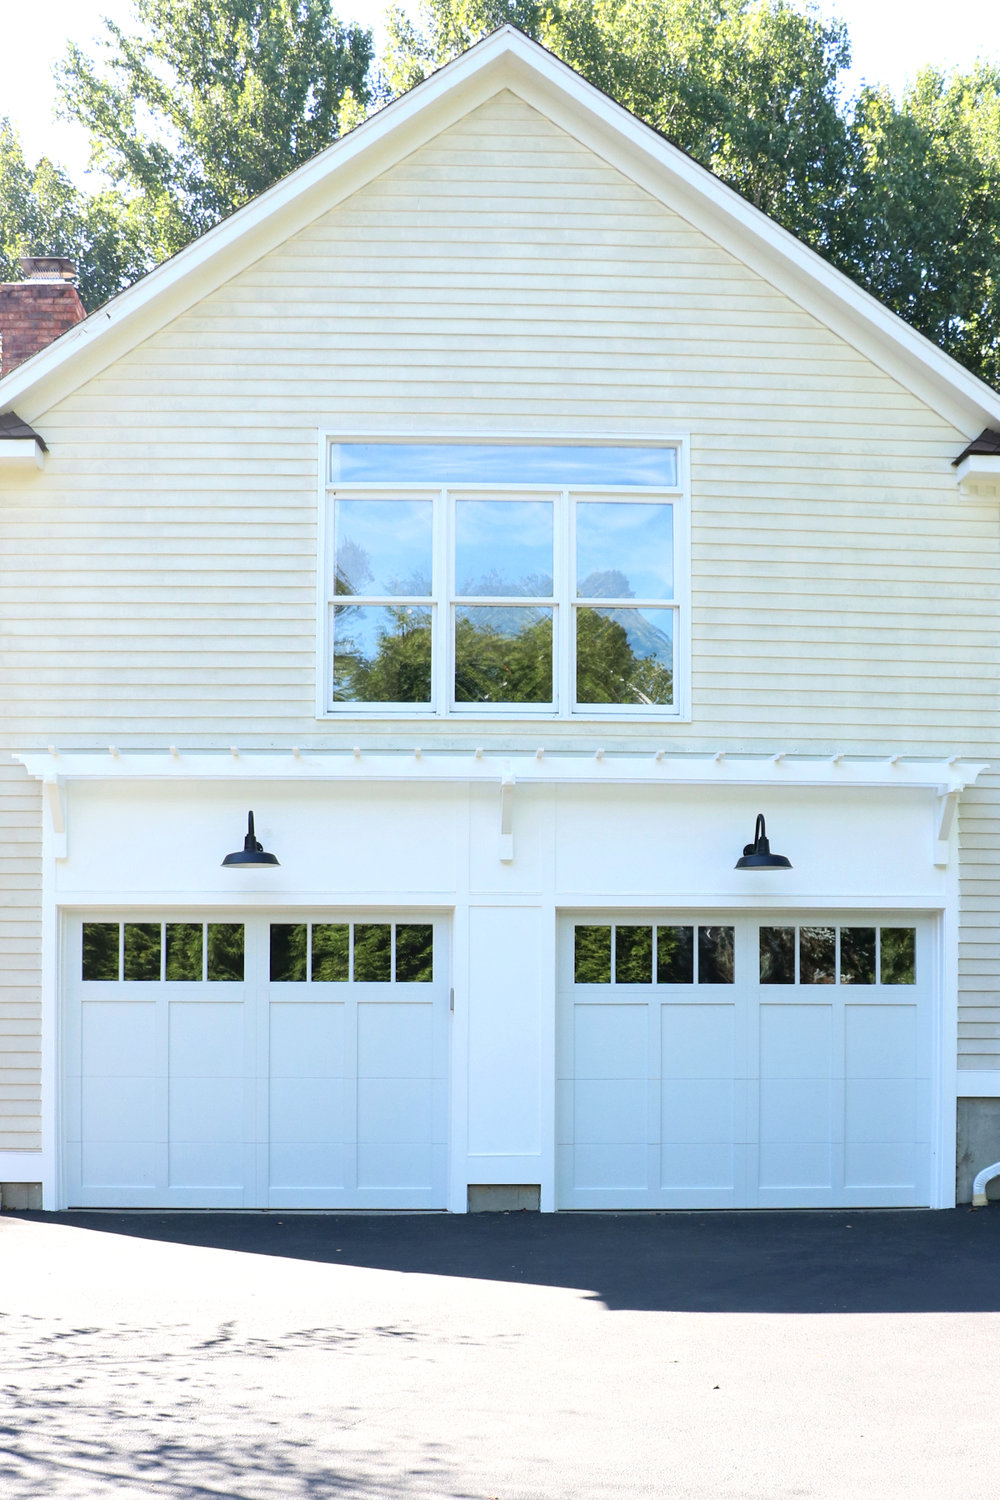 Custom Garage Exterior Project Reveal | root + dwell